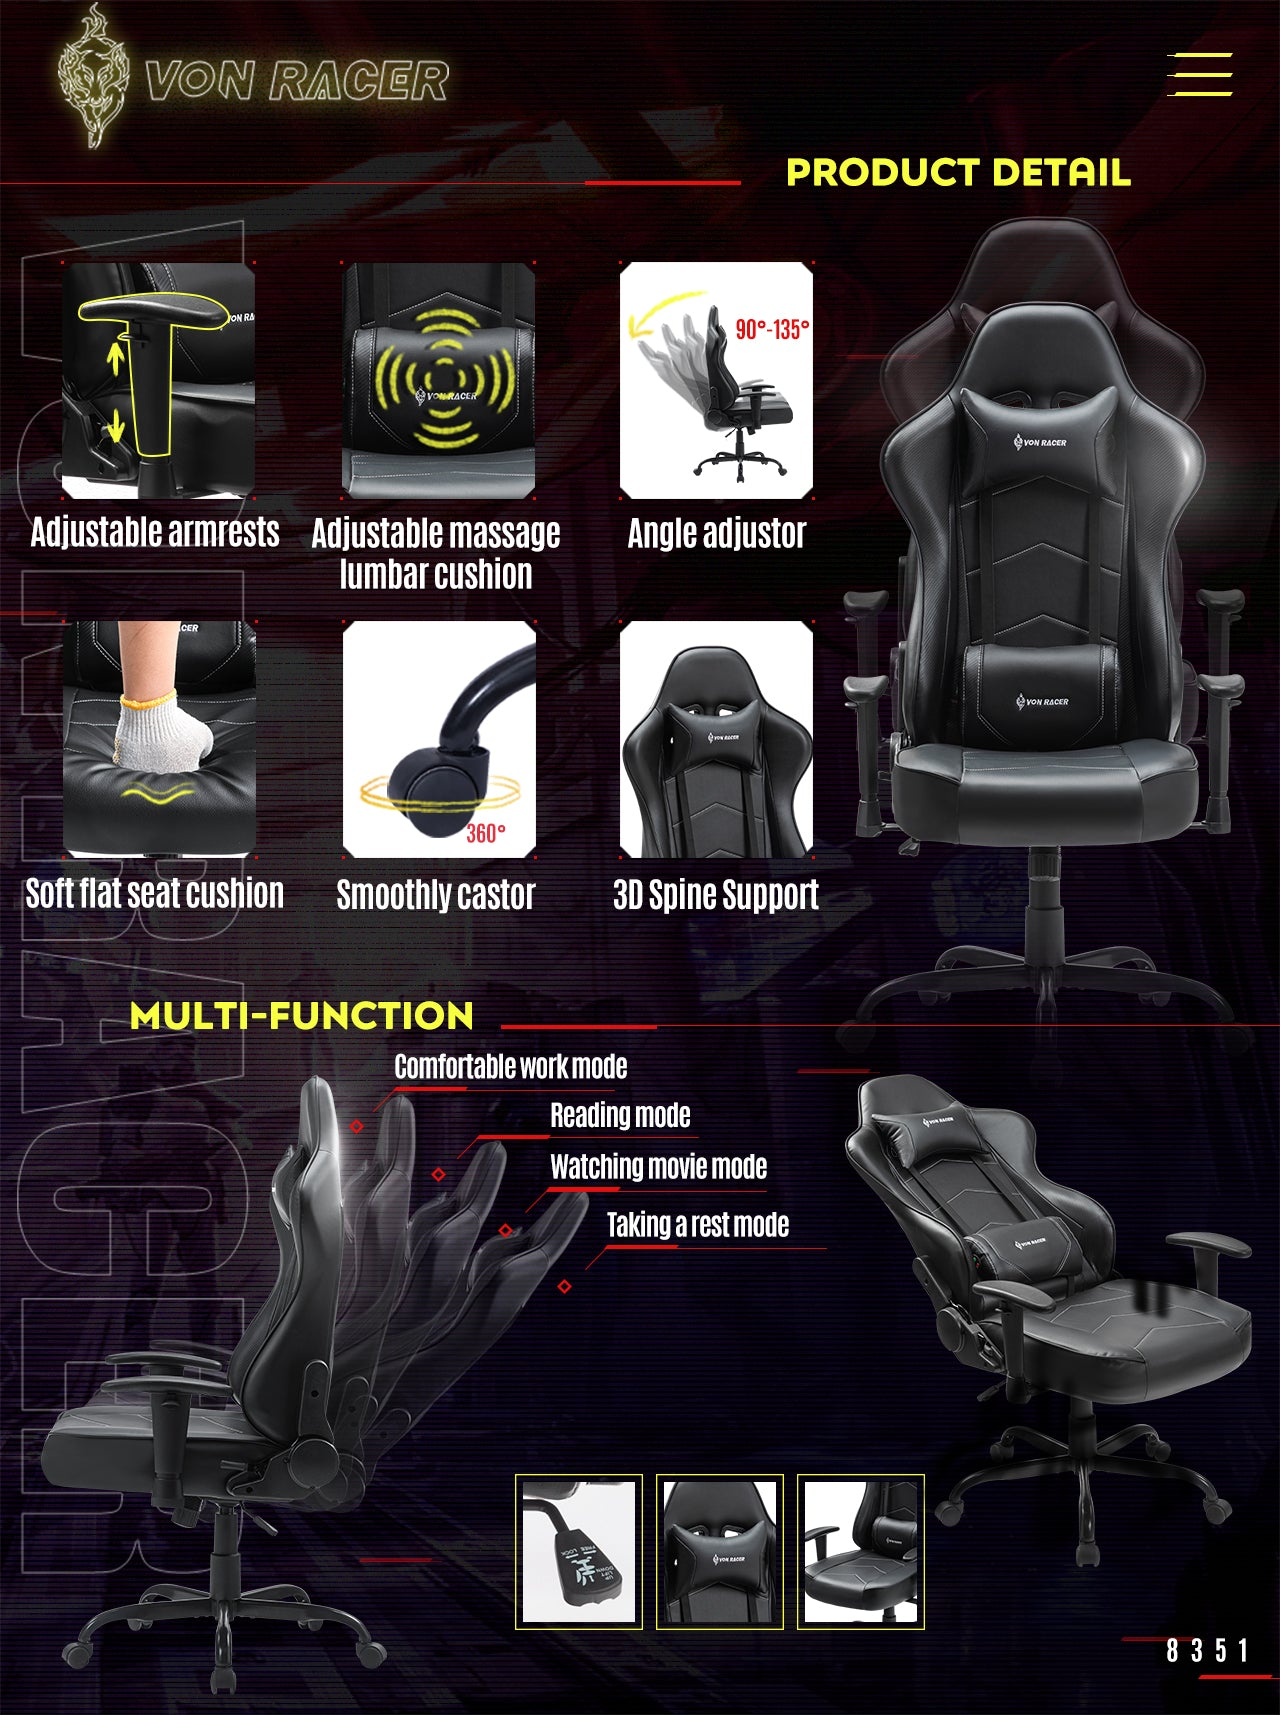 VON RACER Gaming Chair ADDAX Series Ergonomic black gaming desk chair features